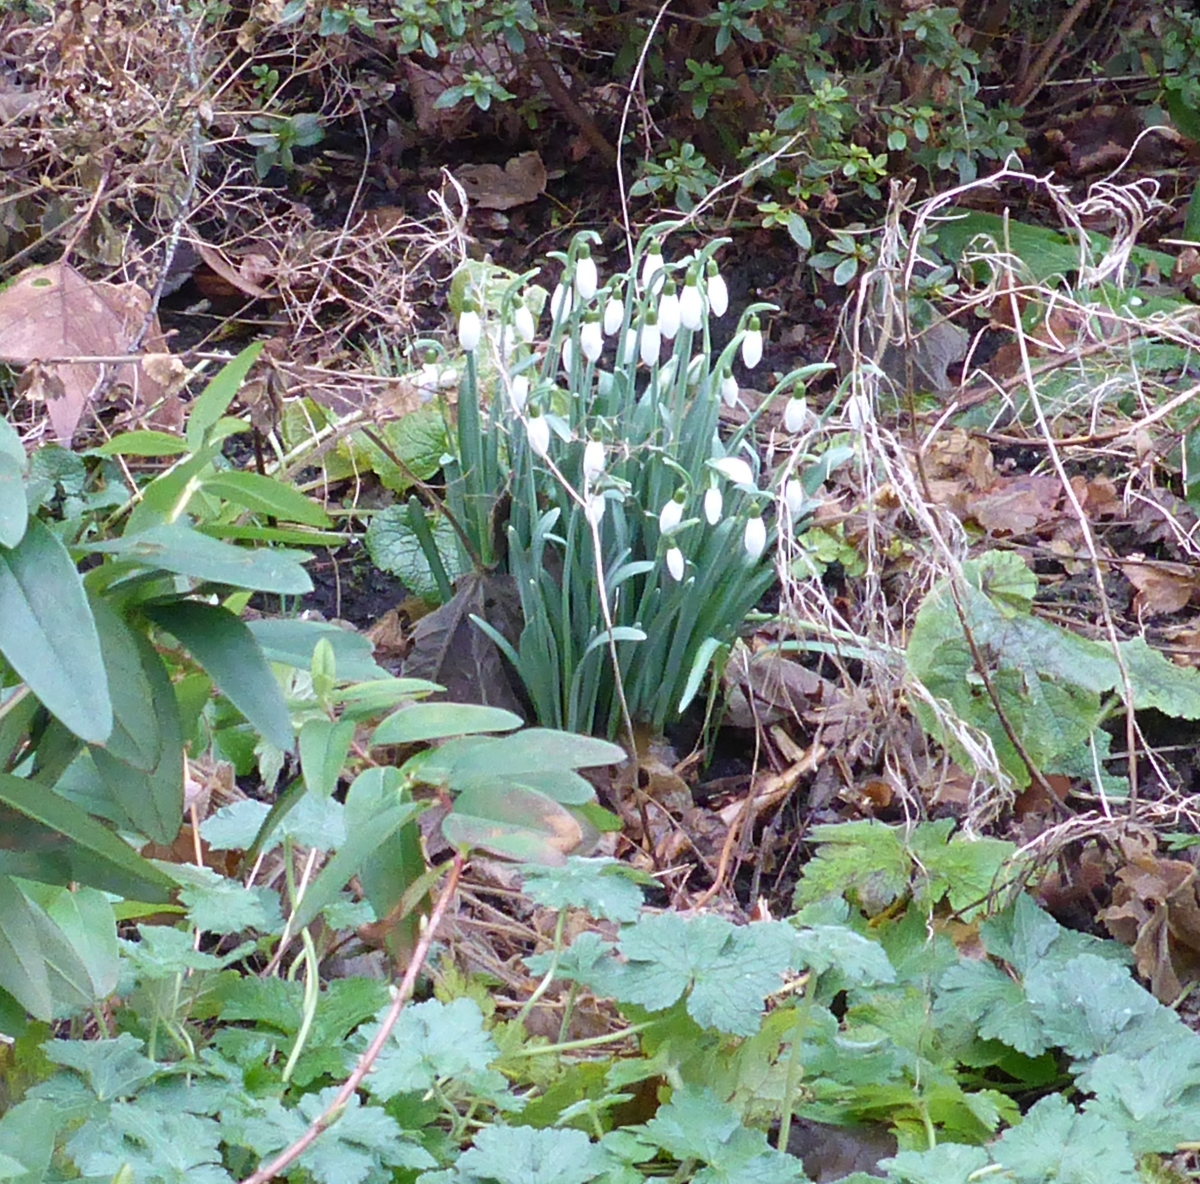 Snowdrops in a garden on our street